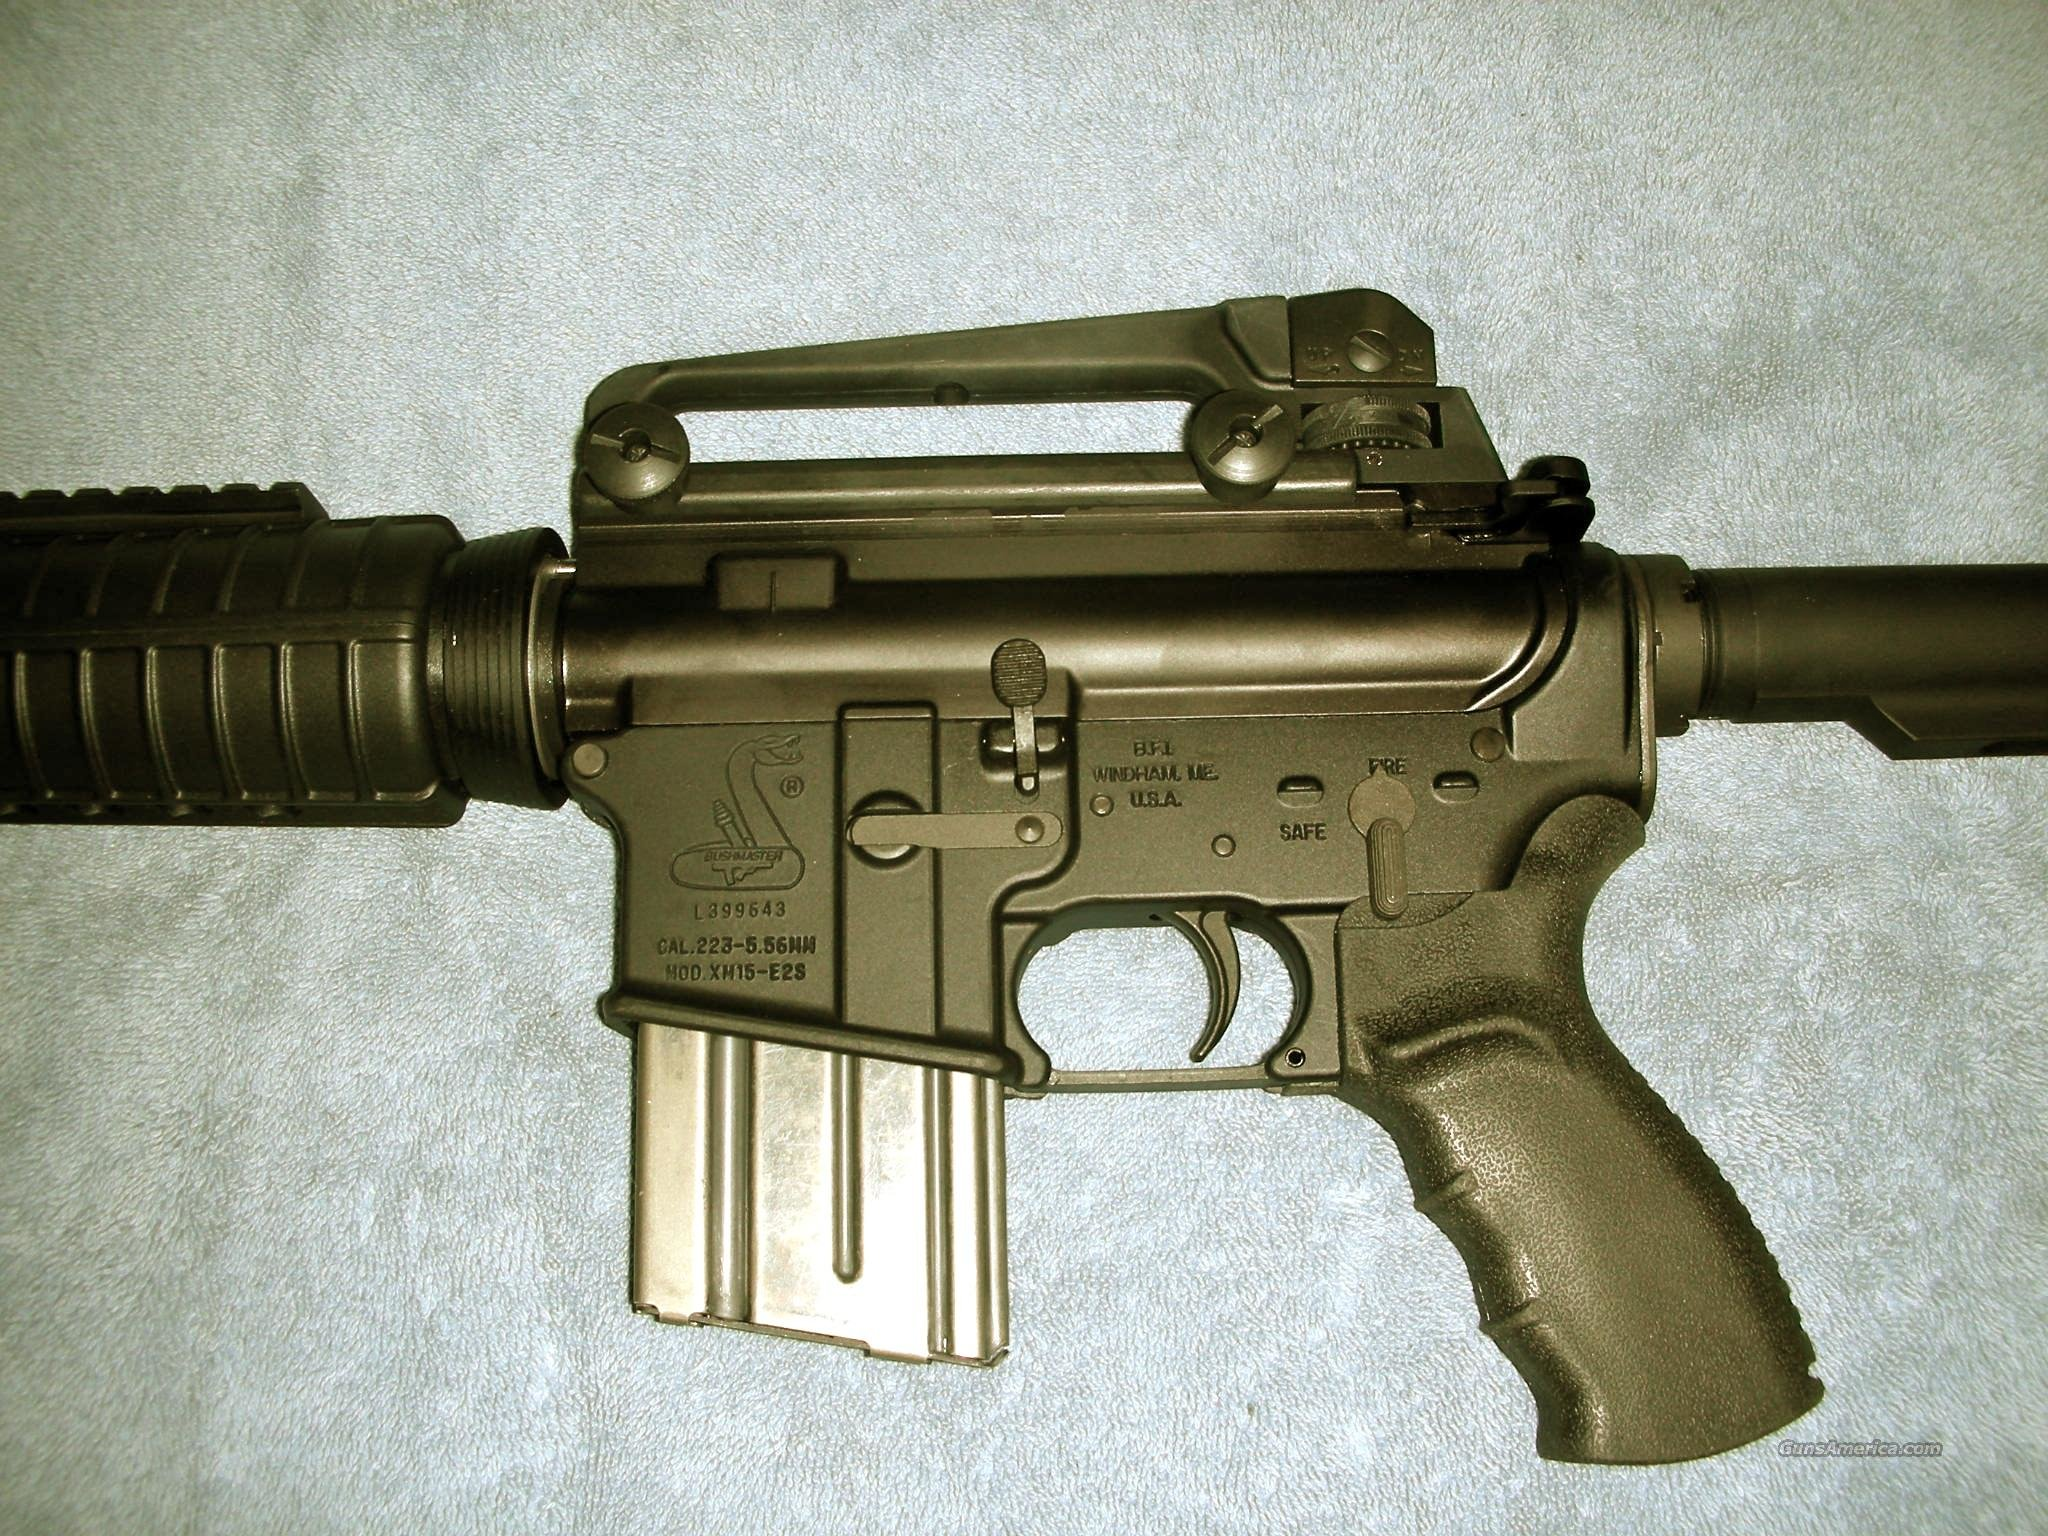 BUSHMASTER XM15-E2S (A4-.223/5.56mm) For Sale